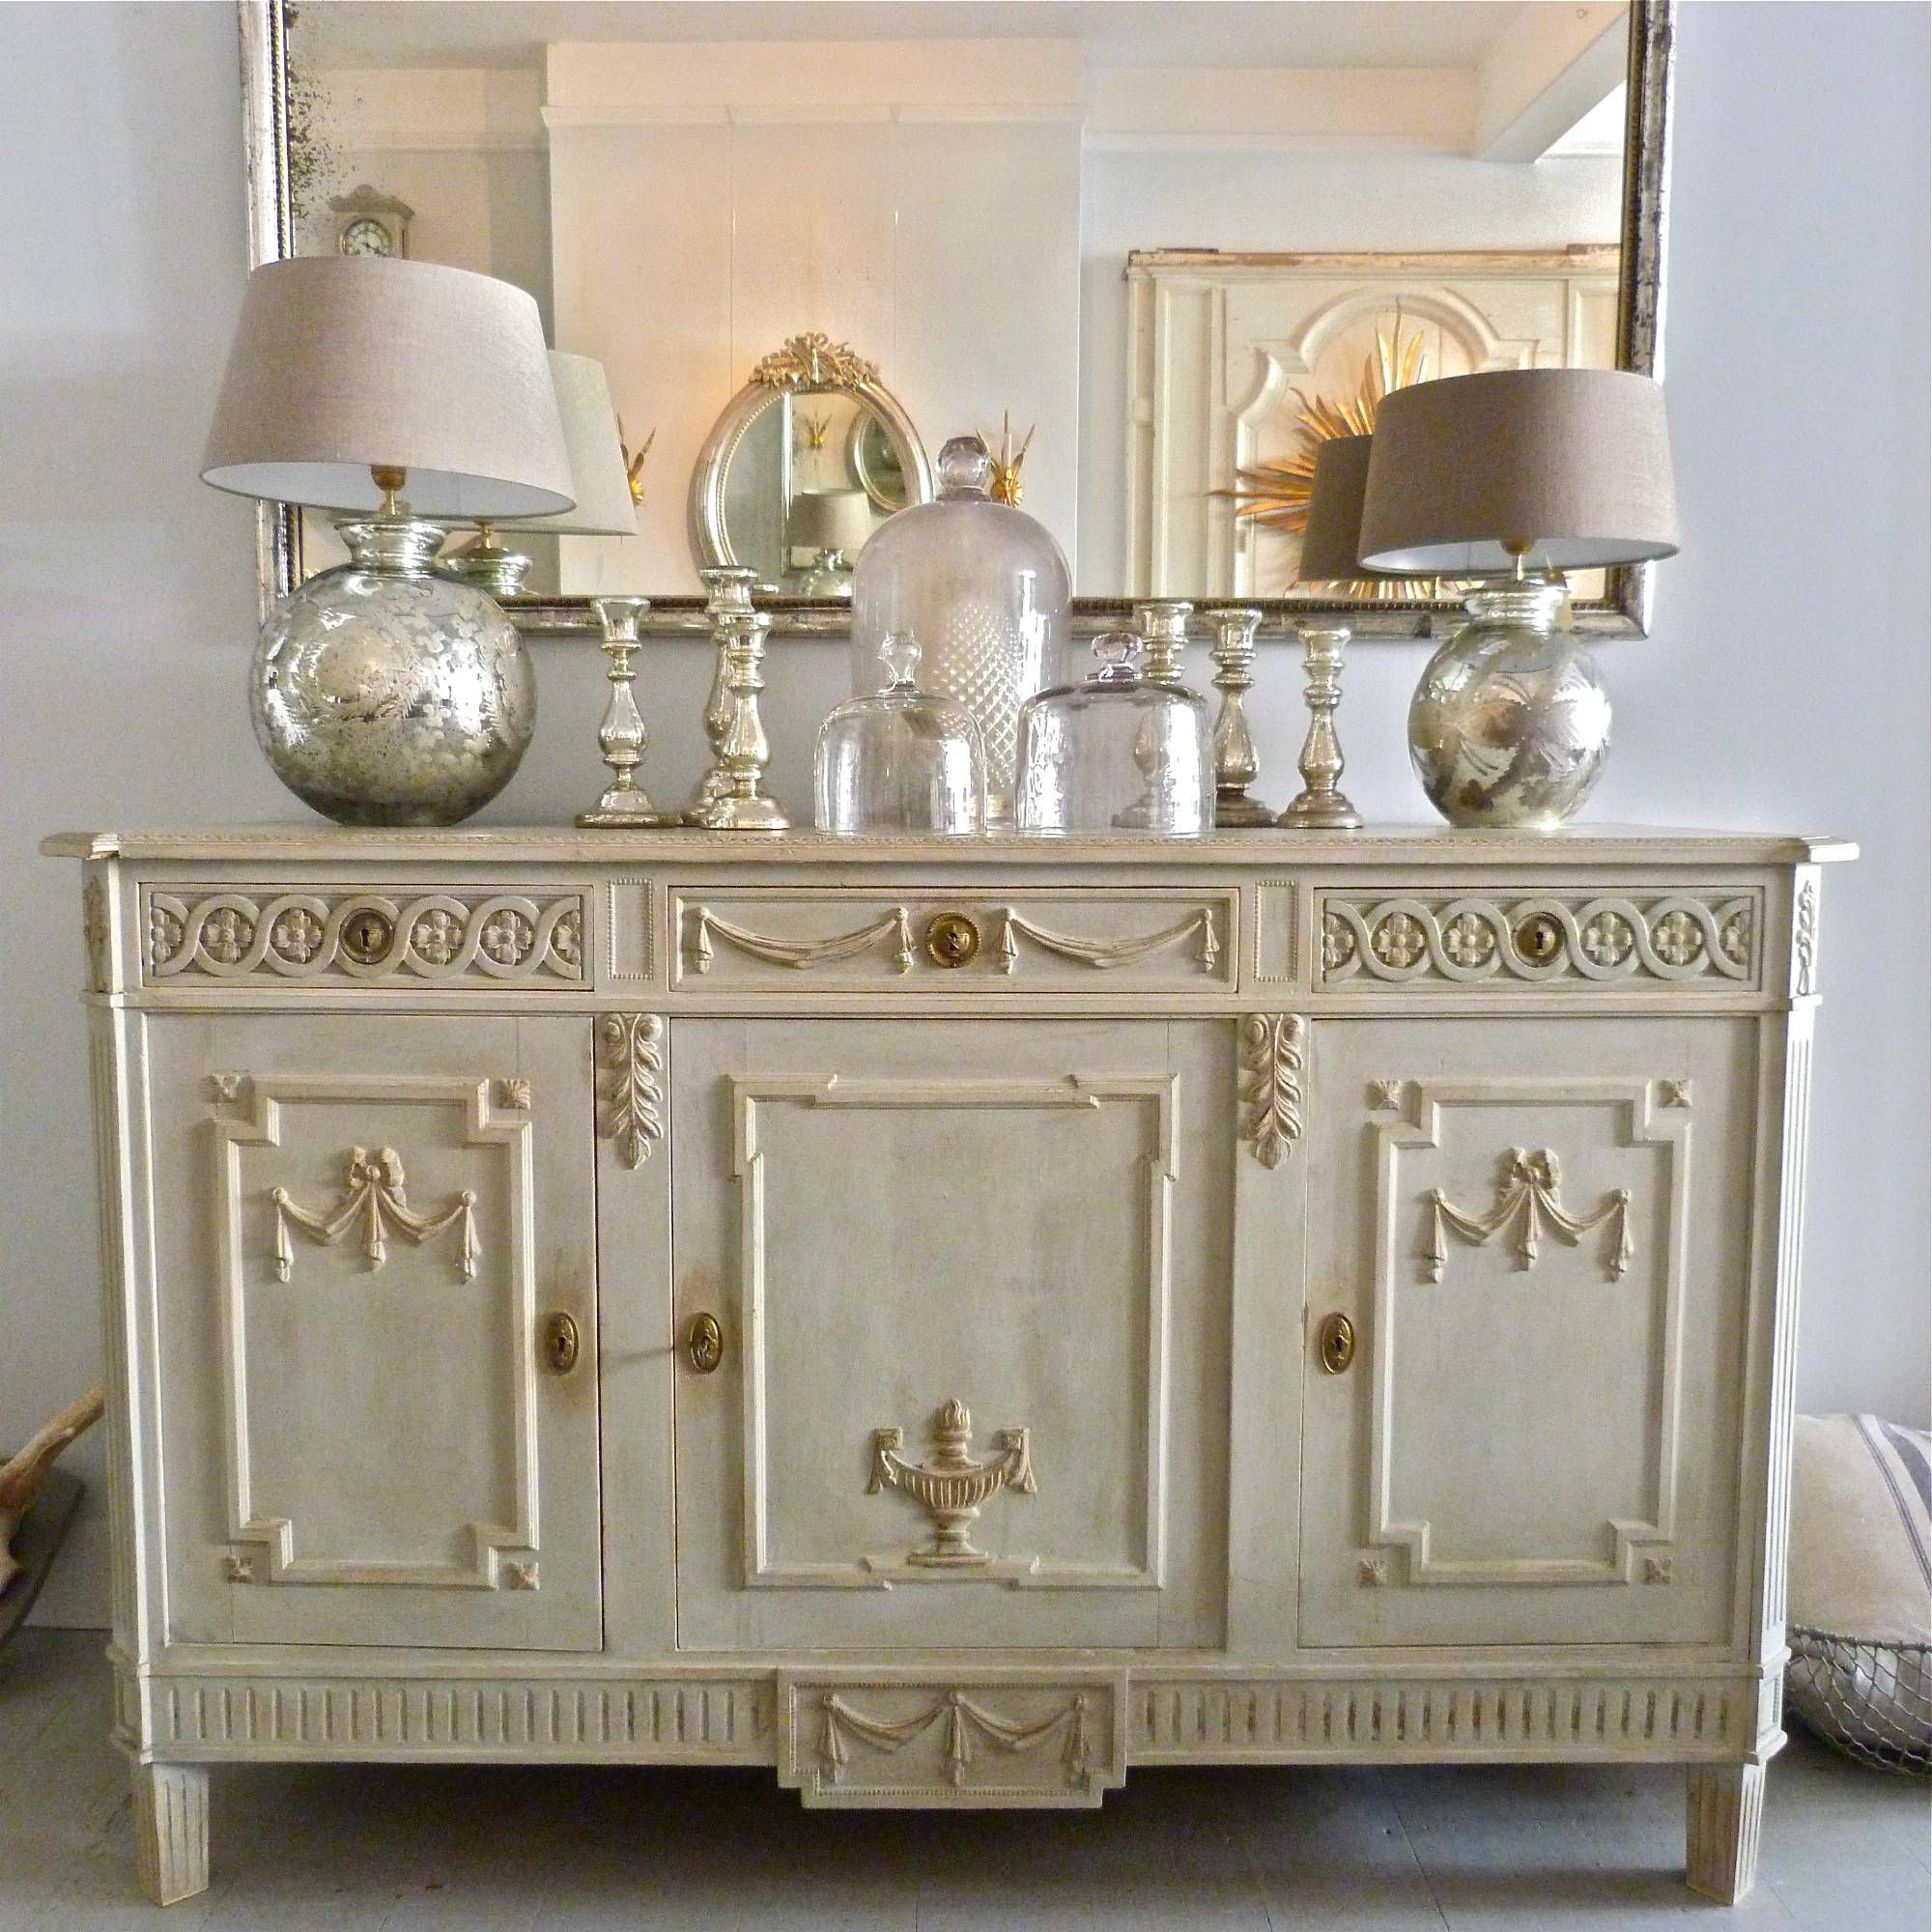 late 19th century swedish gustavian style sideboard - Gustavian Style Furniture